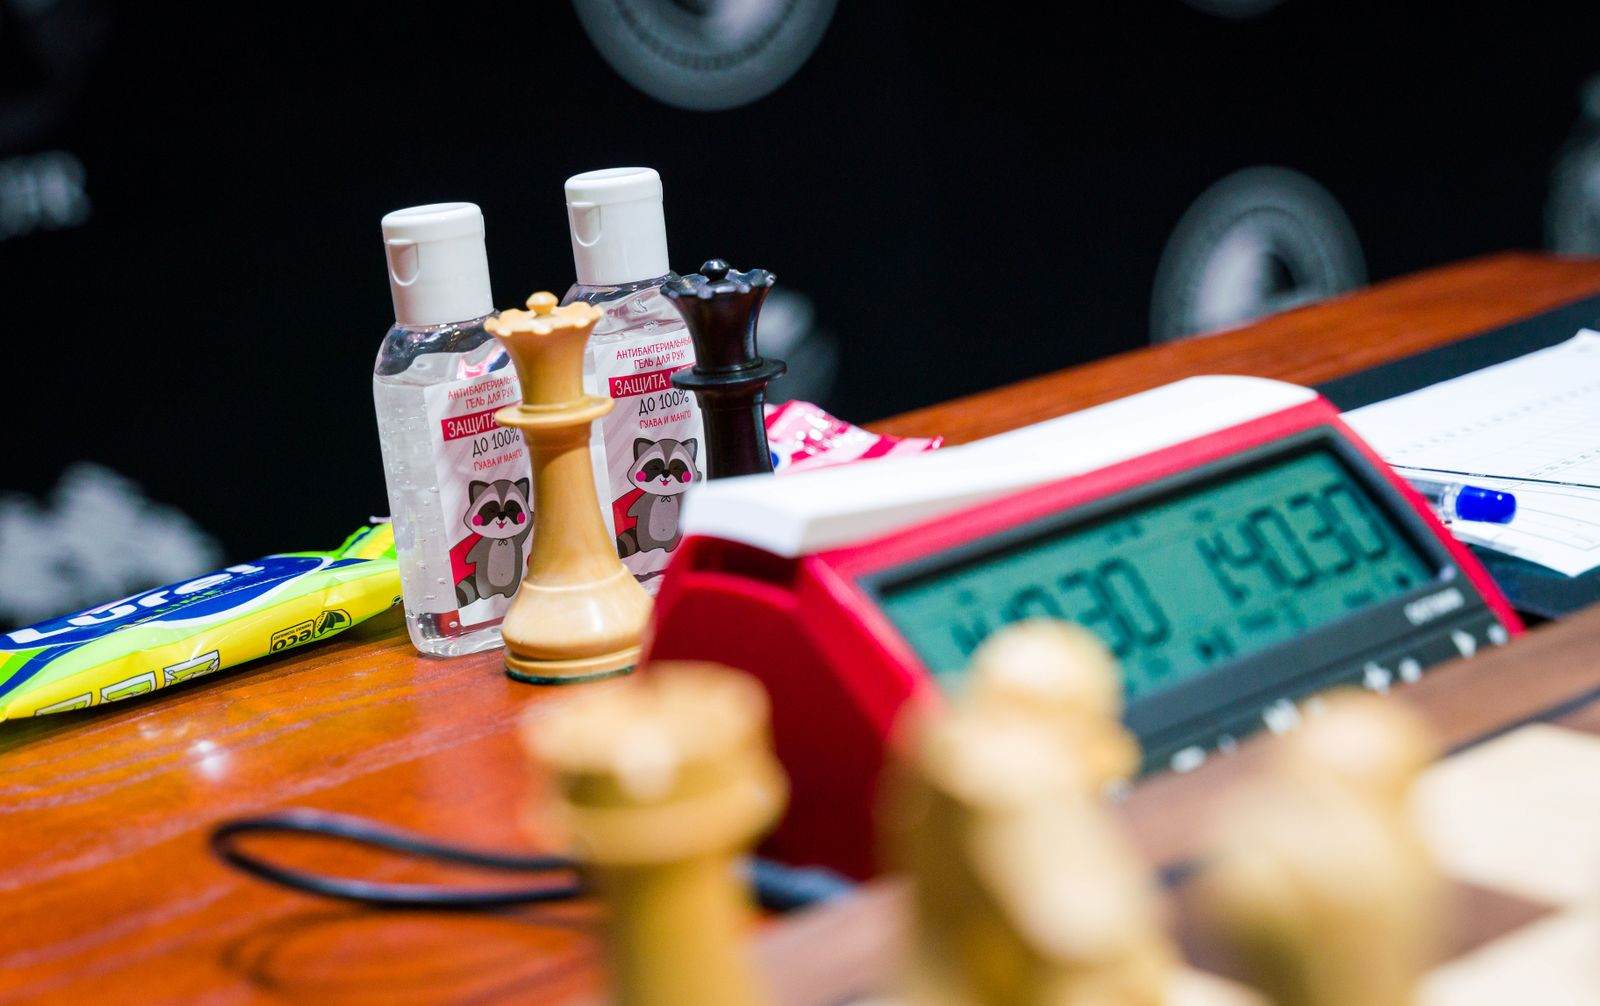 Bottles with hand sanitiser are seen near the chessboard during the Candidates Tournament in Yekaterinburg